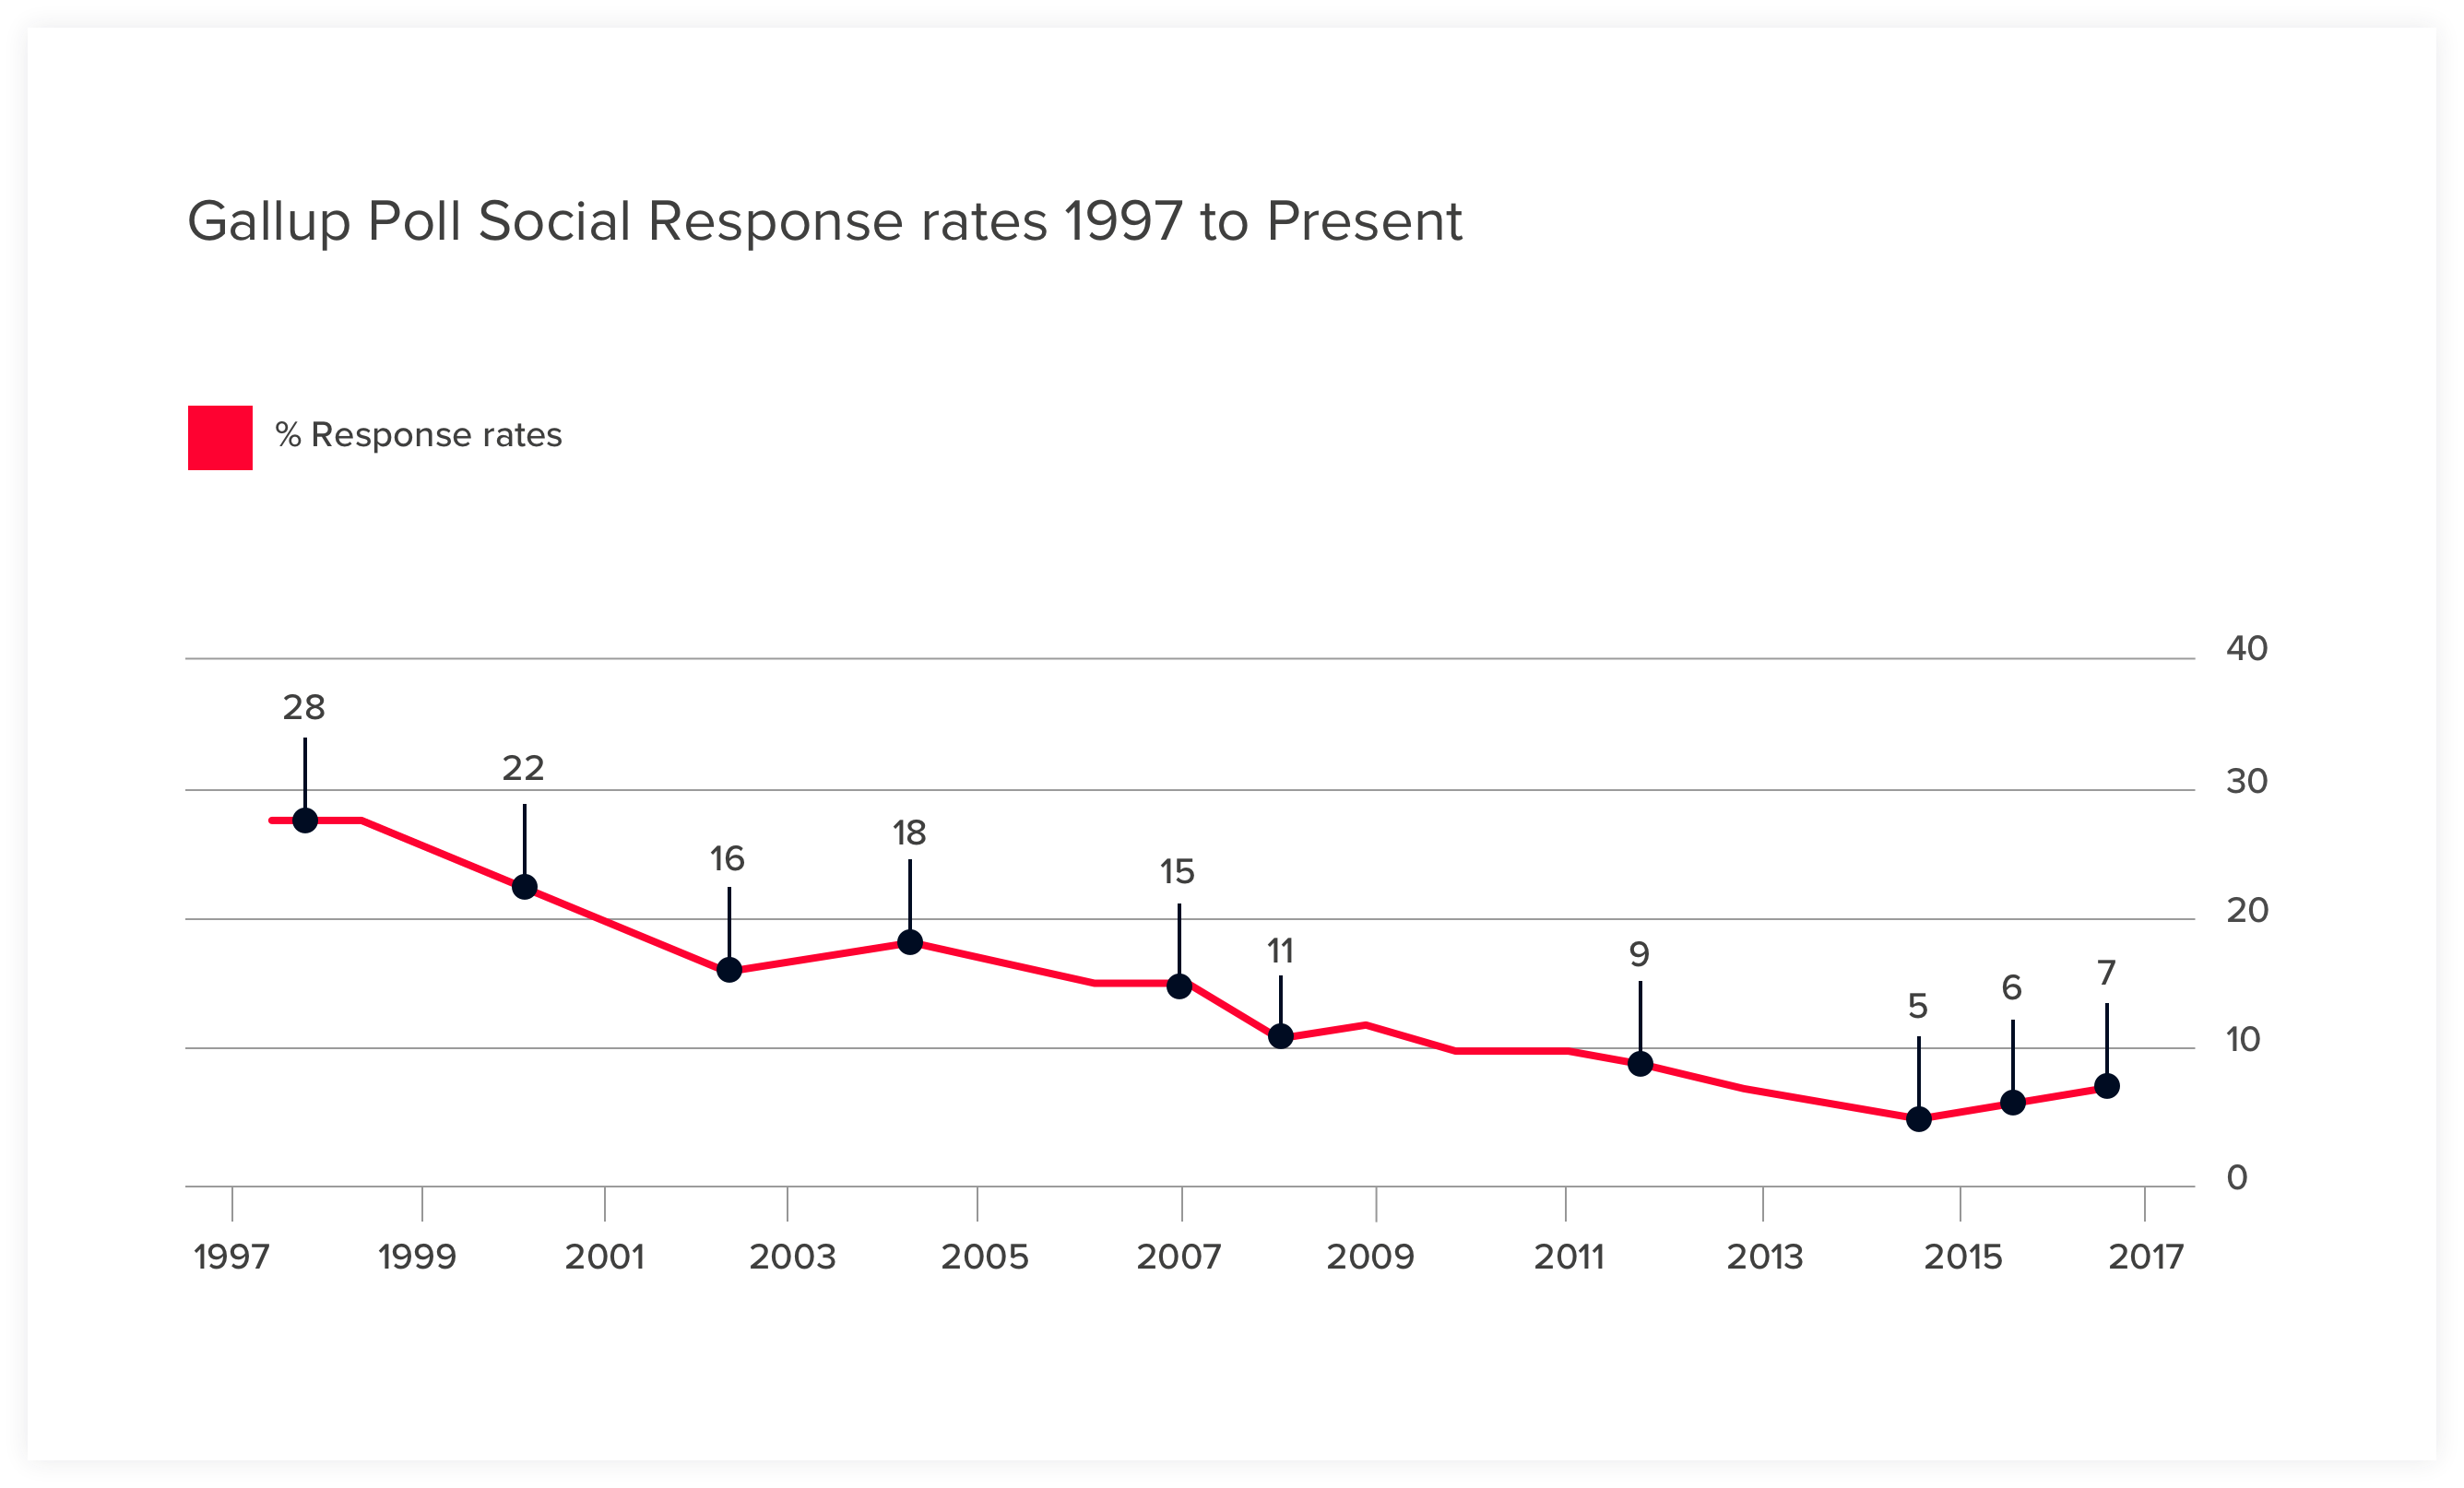 GALLUP POLL SOCIAL